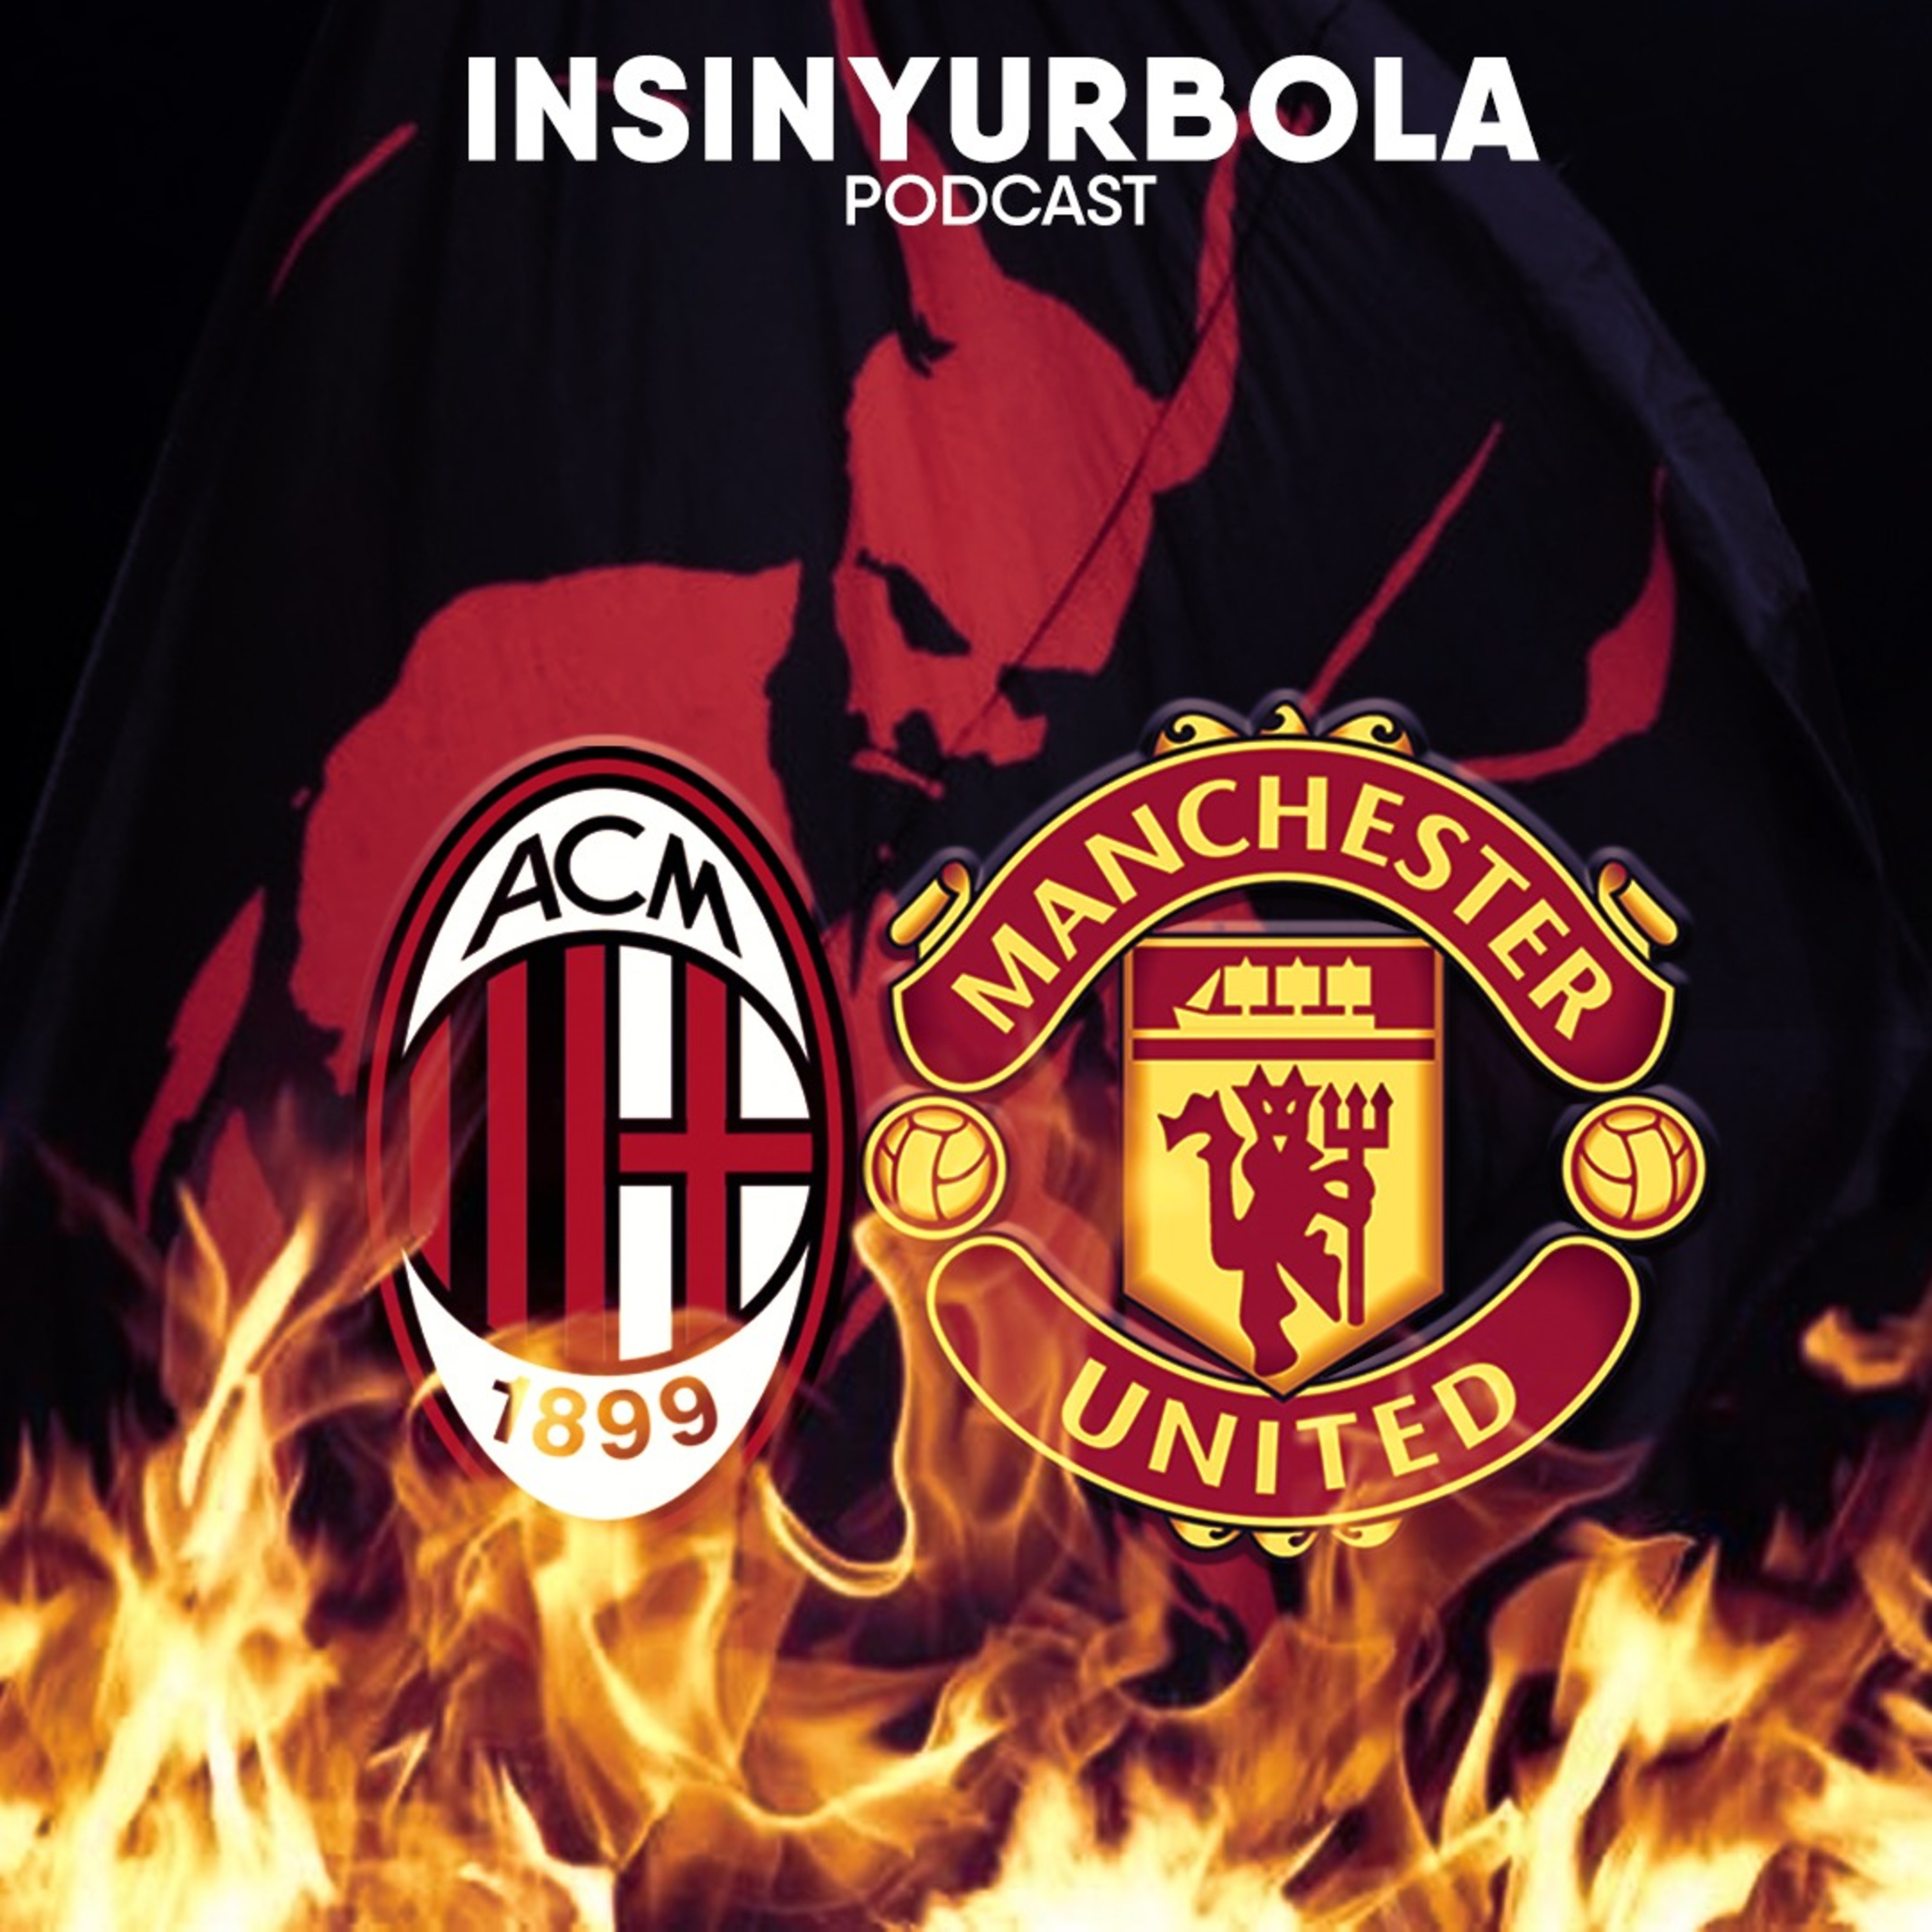 Episode 12 - Rise of The Red Devils!